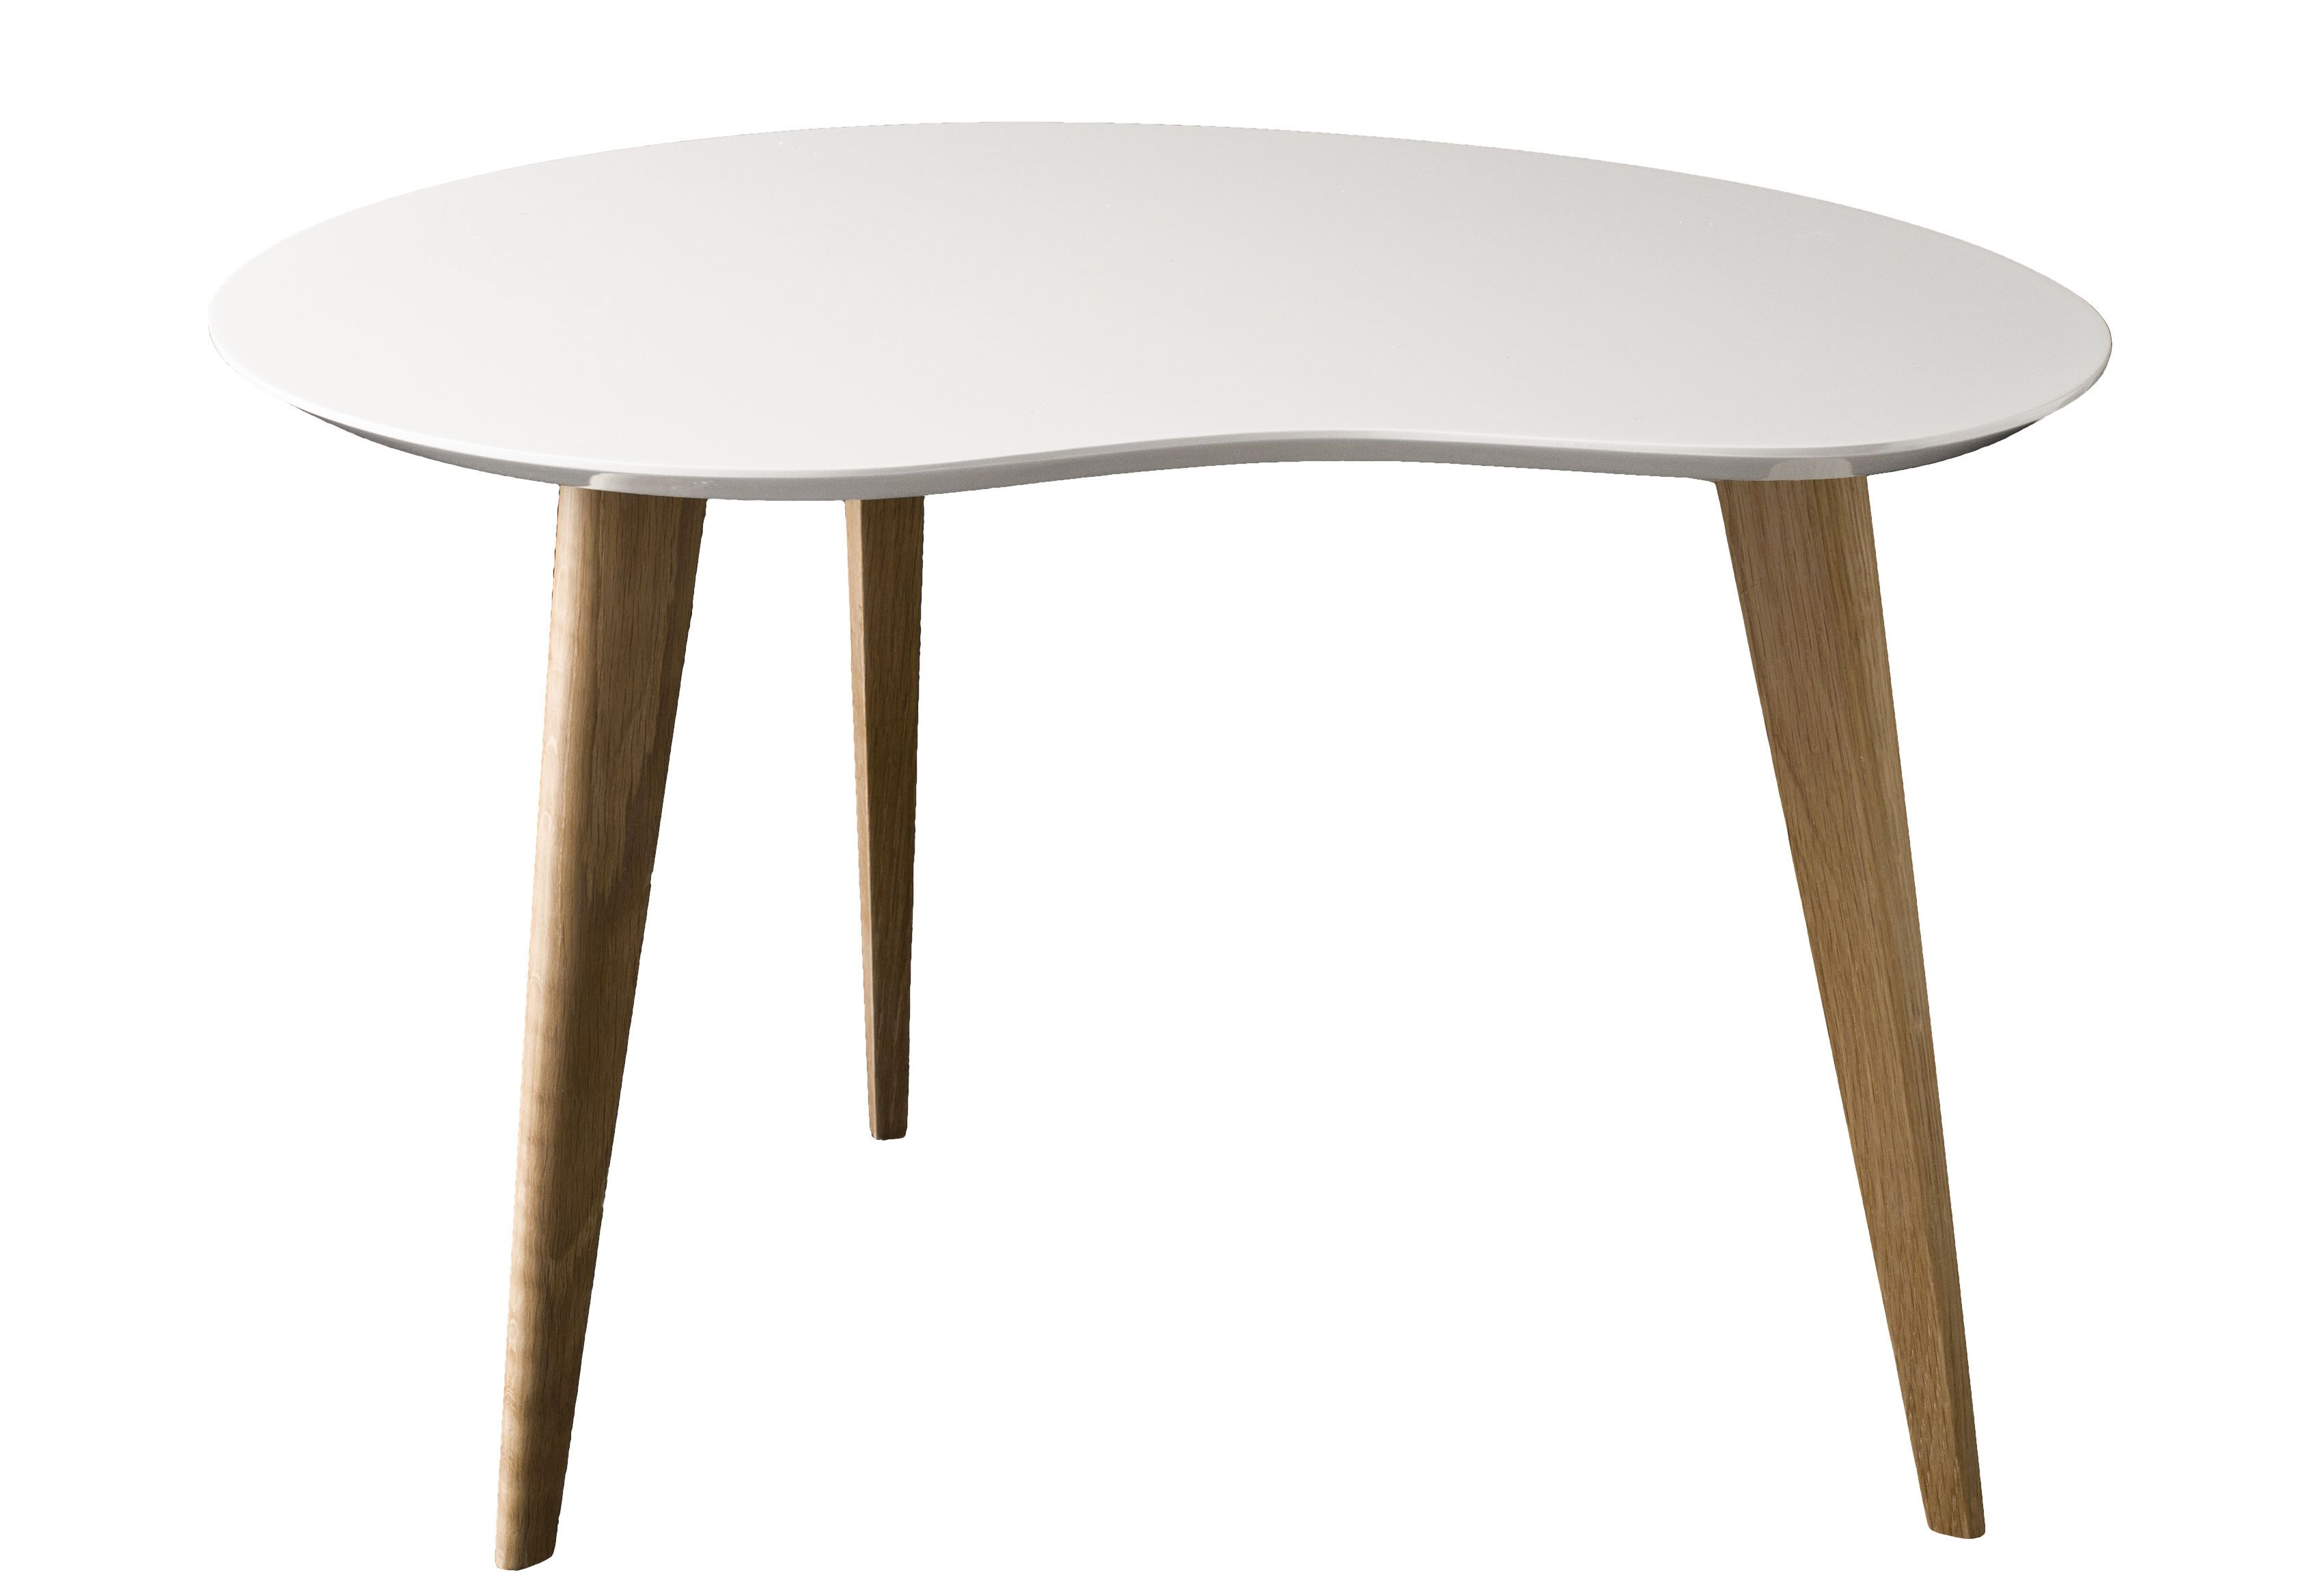 16379083f57c82549888c7cd546b3be9 Impressionnant De Table Basse Blanche Ronde